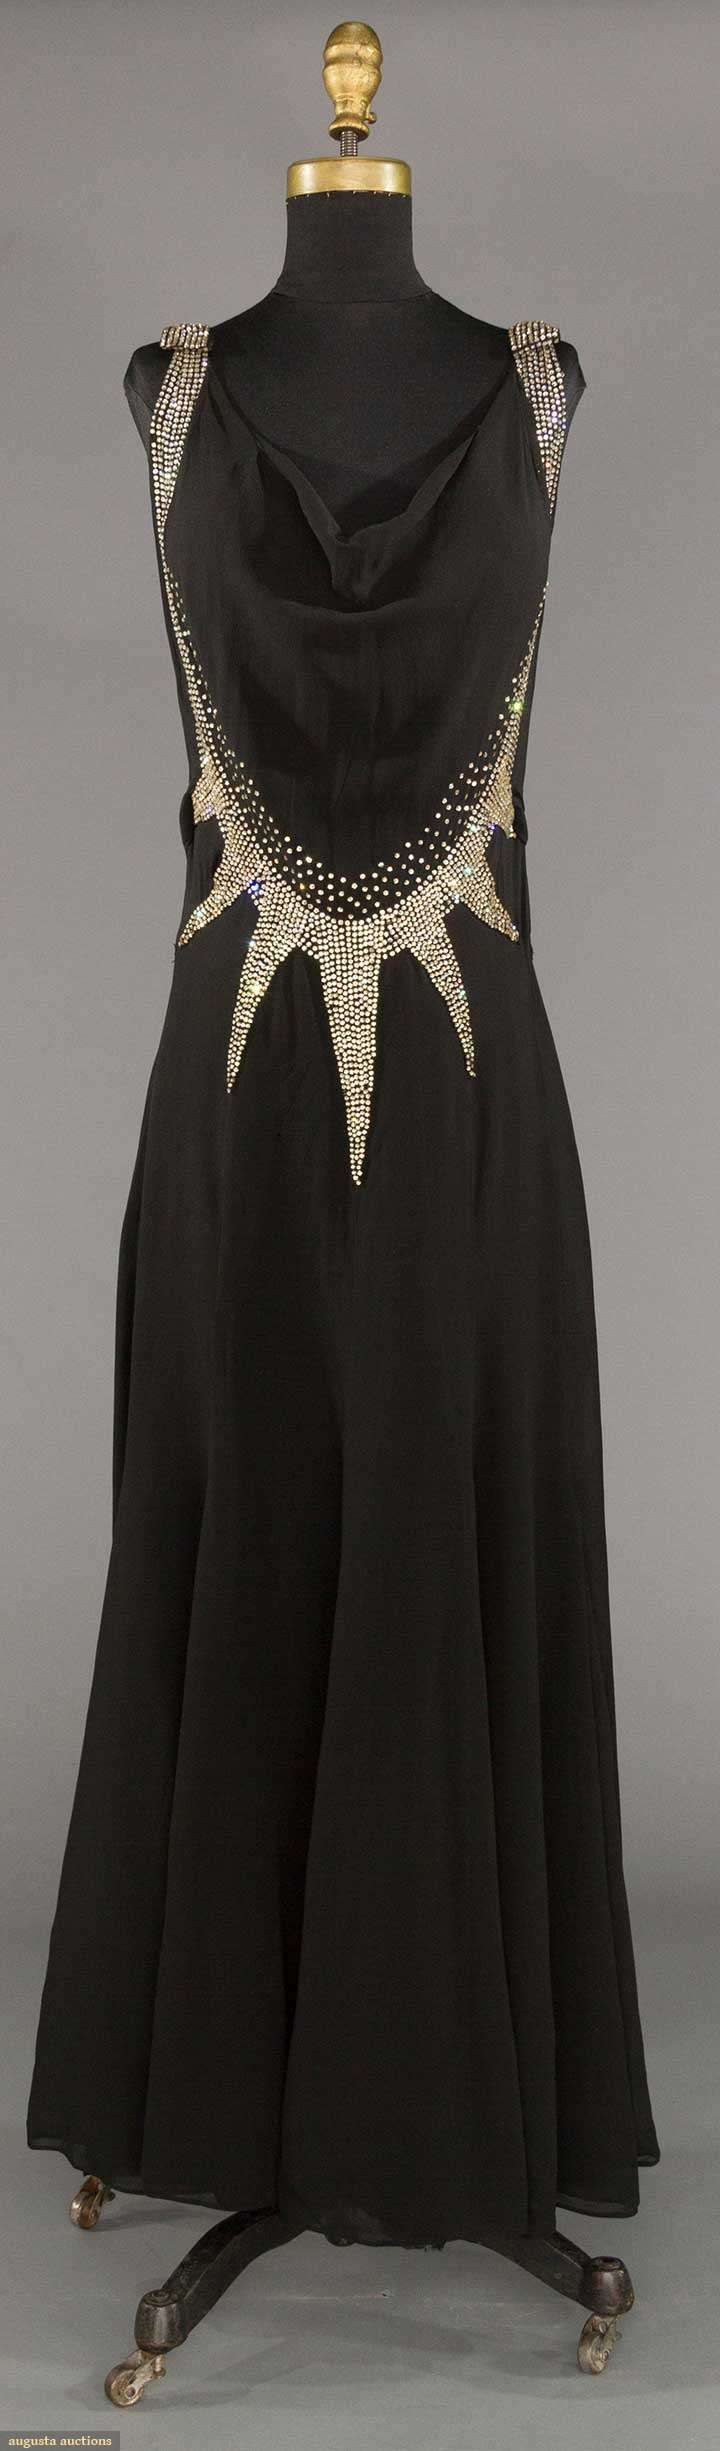 """RHINESTONE DECO EVENING DRESS, 1930s - Lot: 227 May 9, 2017 - CATALOG SALE Sturbridge, Massachusetts - Black silk chiffon w/ wide Deco pattern rhinestone bands, gored skirt, B to 34"""", W to 28"""", H 36"""", (no side opening, couple very small holes to side, large tuck taken in from W to hem seam, 1 tear to chiffon at edge of 1 rhinestone point) fair."""